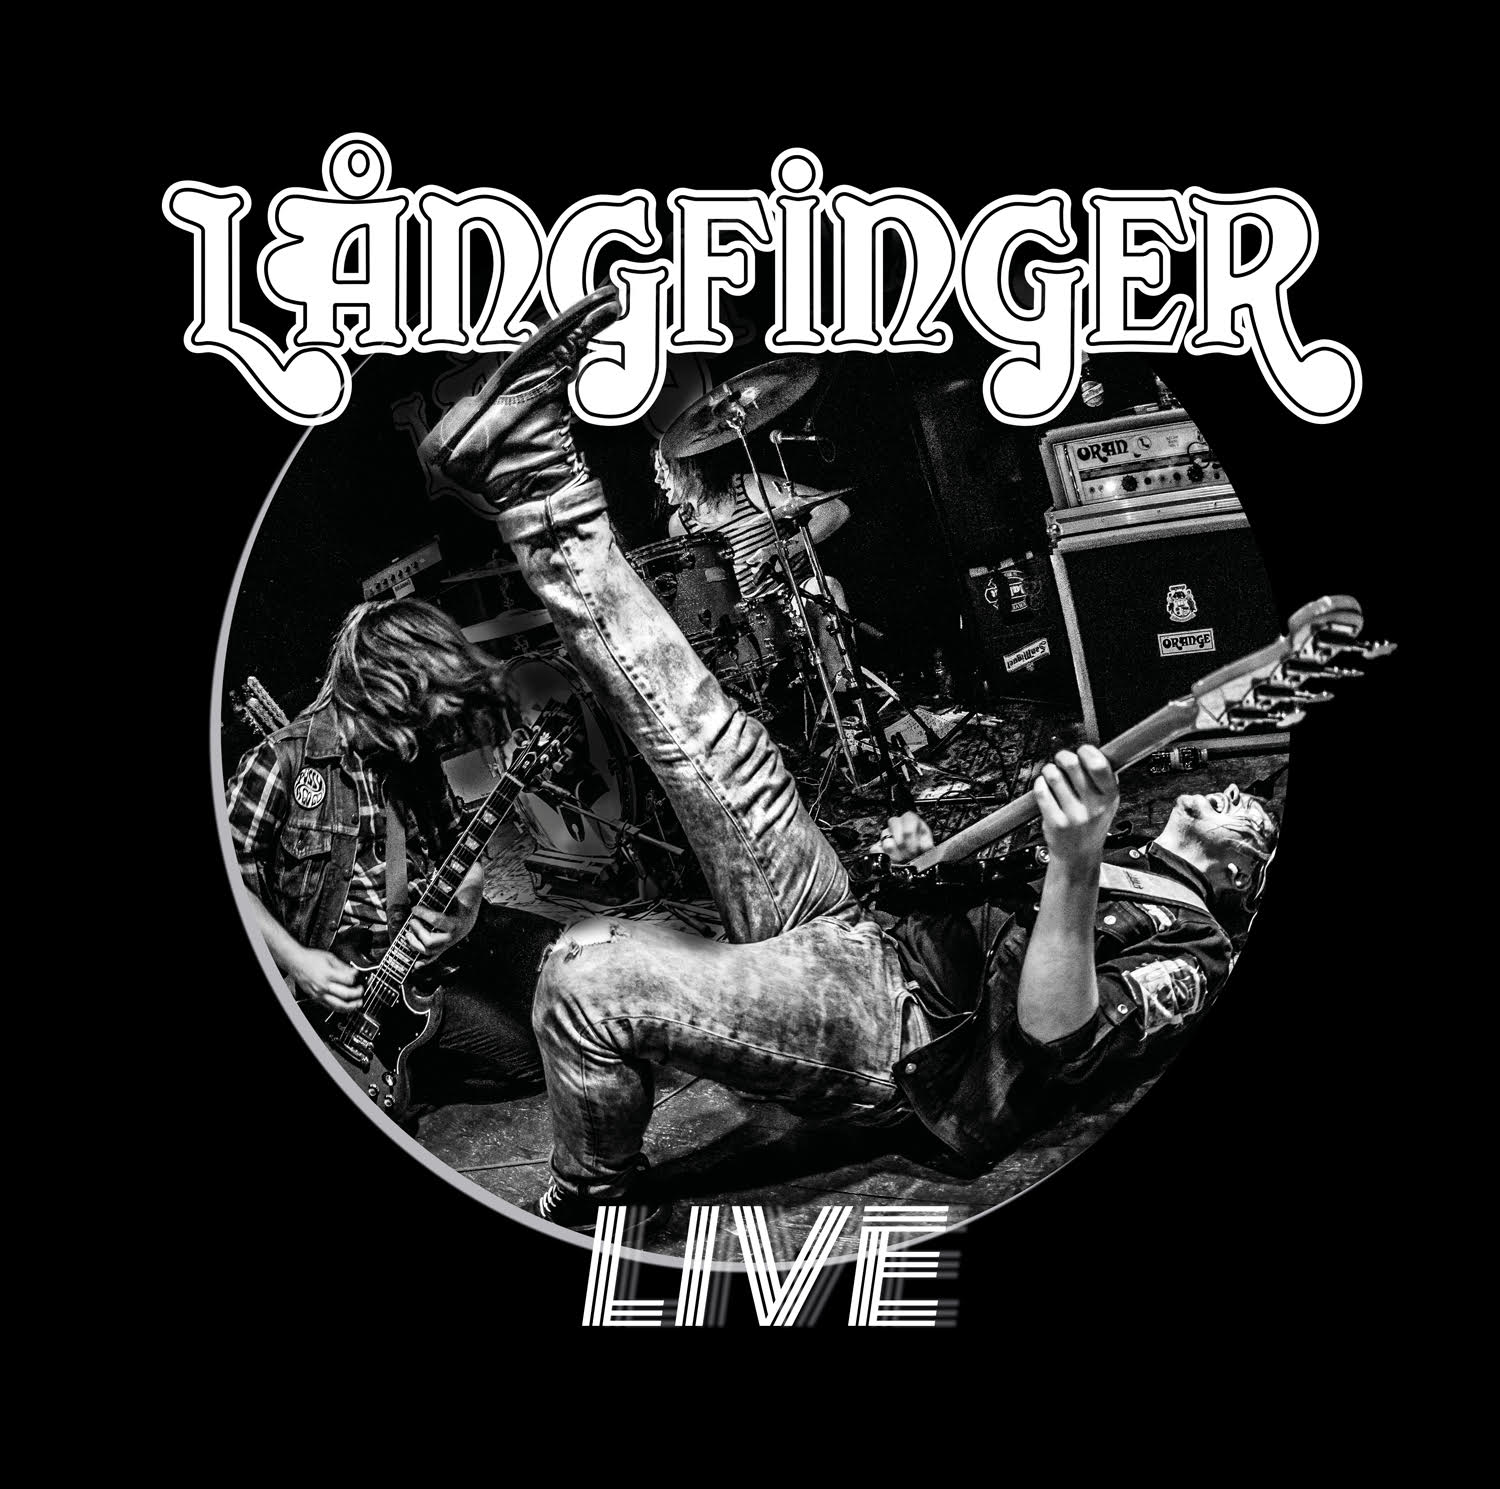 LIVE - The ultimate snapshot of Långfinger in all its glory. Out on May 24 2019 on Beduin and Sound Pollution.Limited to 200 copies on orange 180g vinyl.